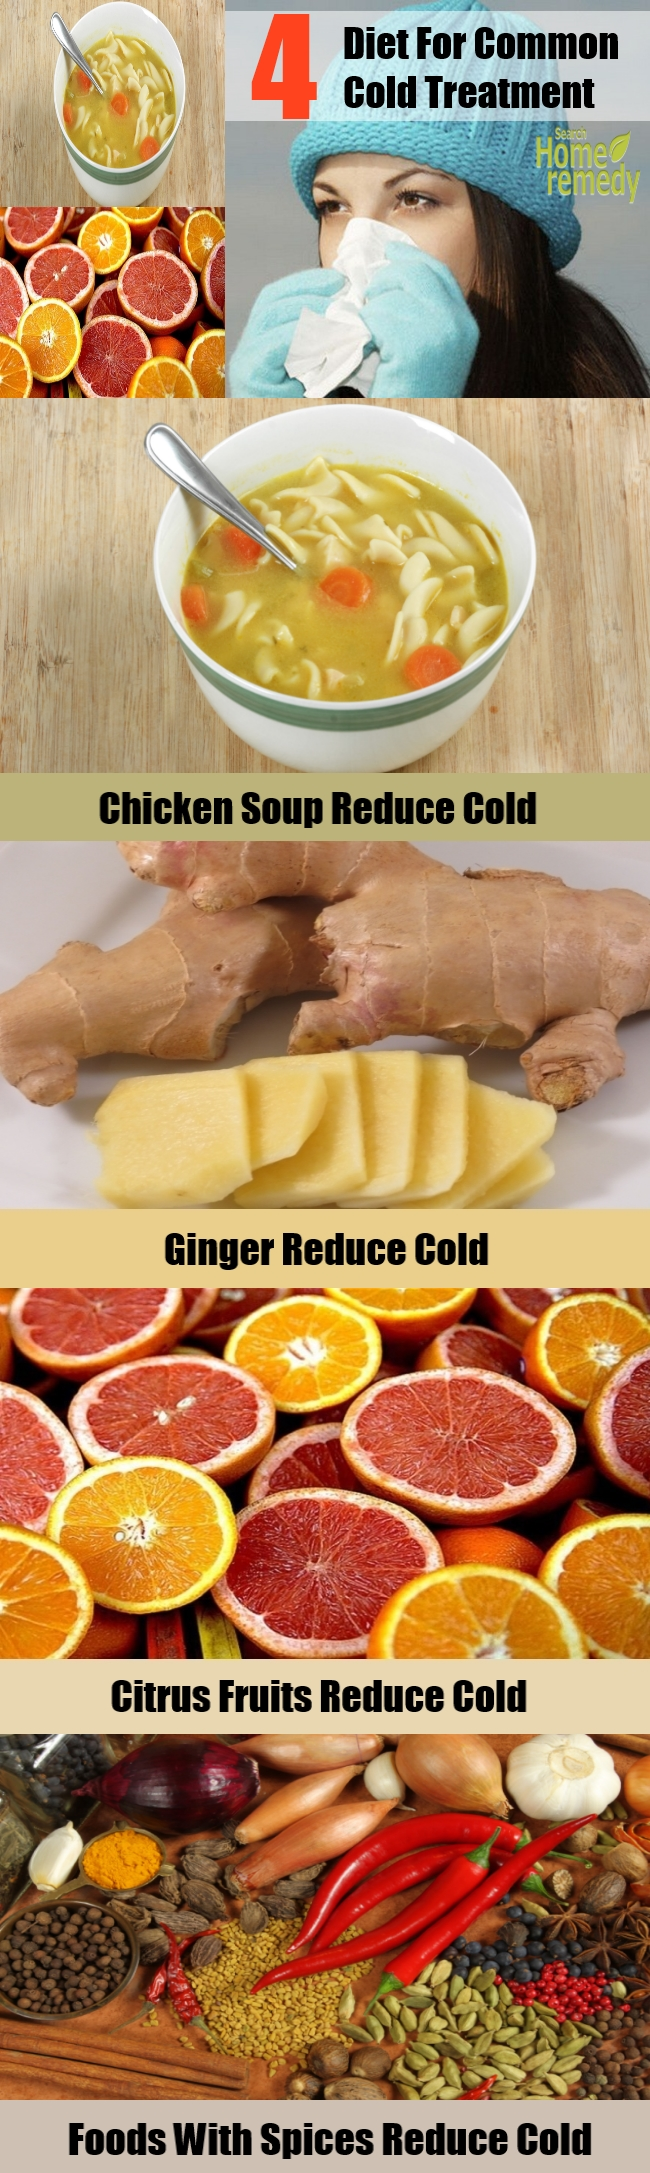 4 Diet For Common Cold Treatment